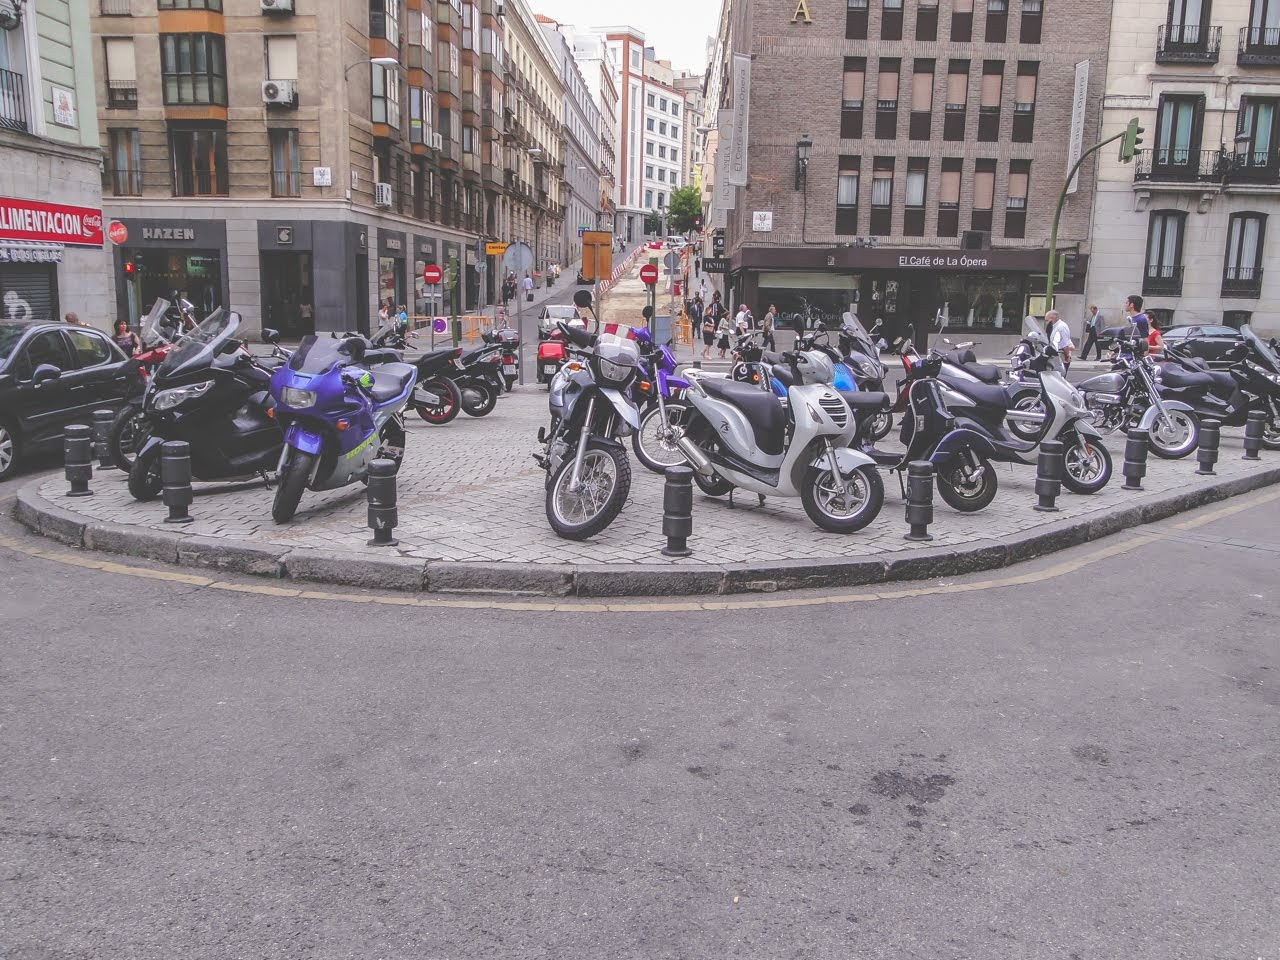 A large number of mopeds line this area